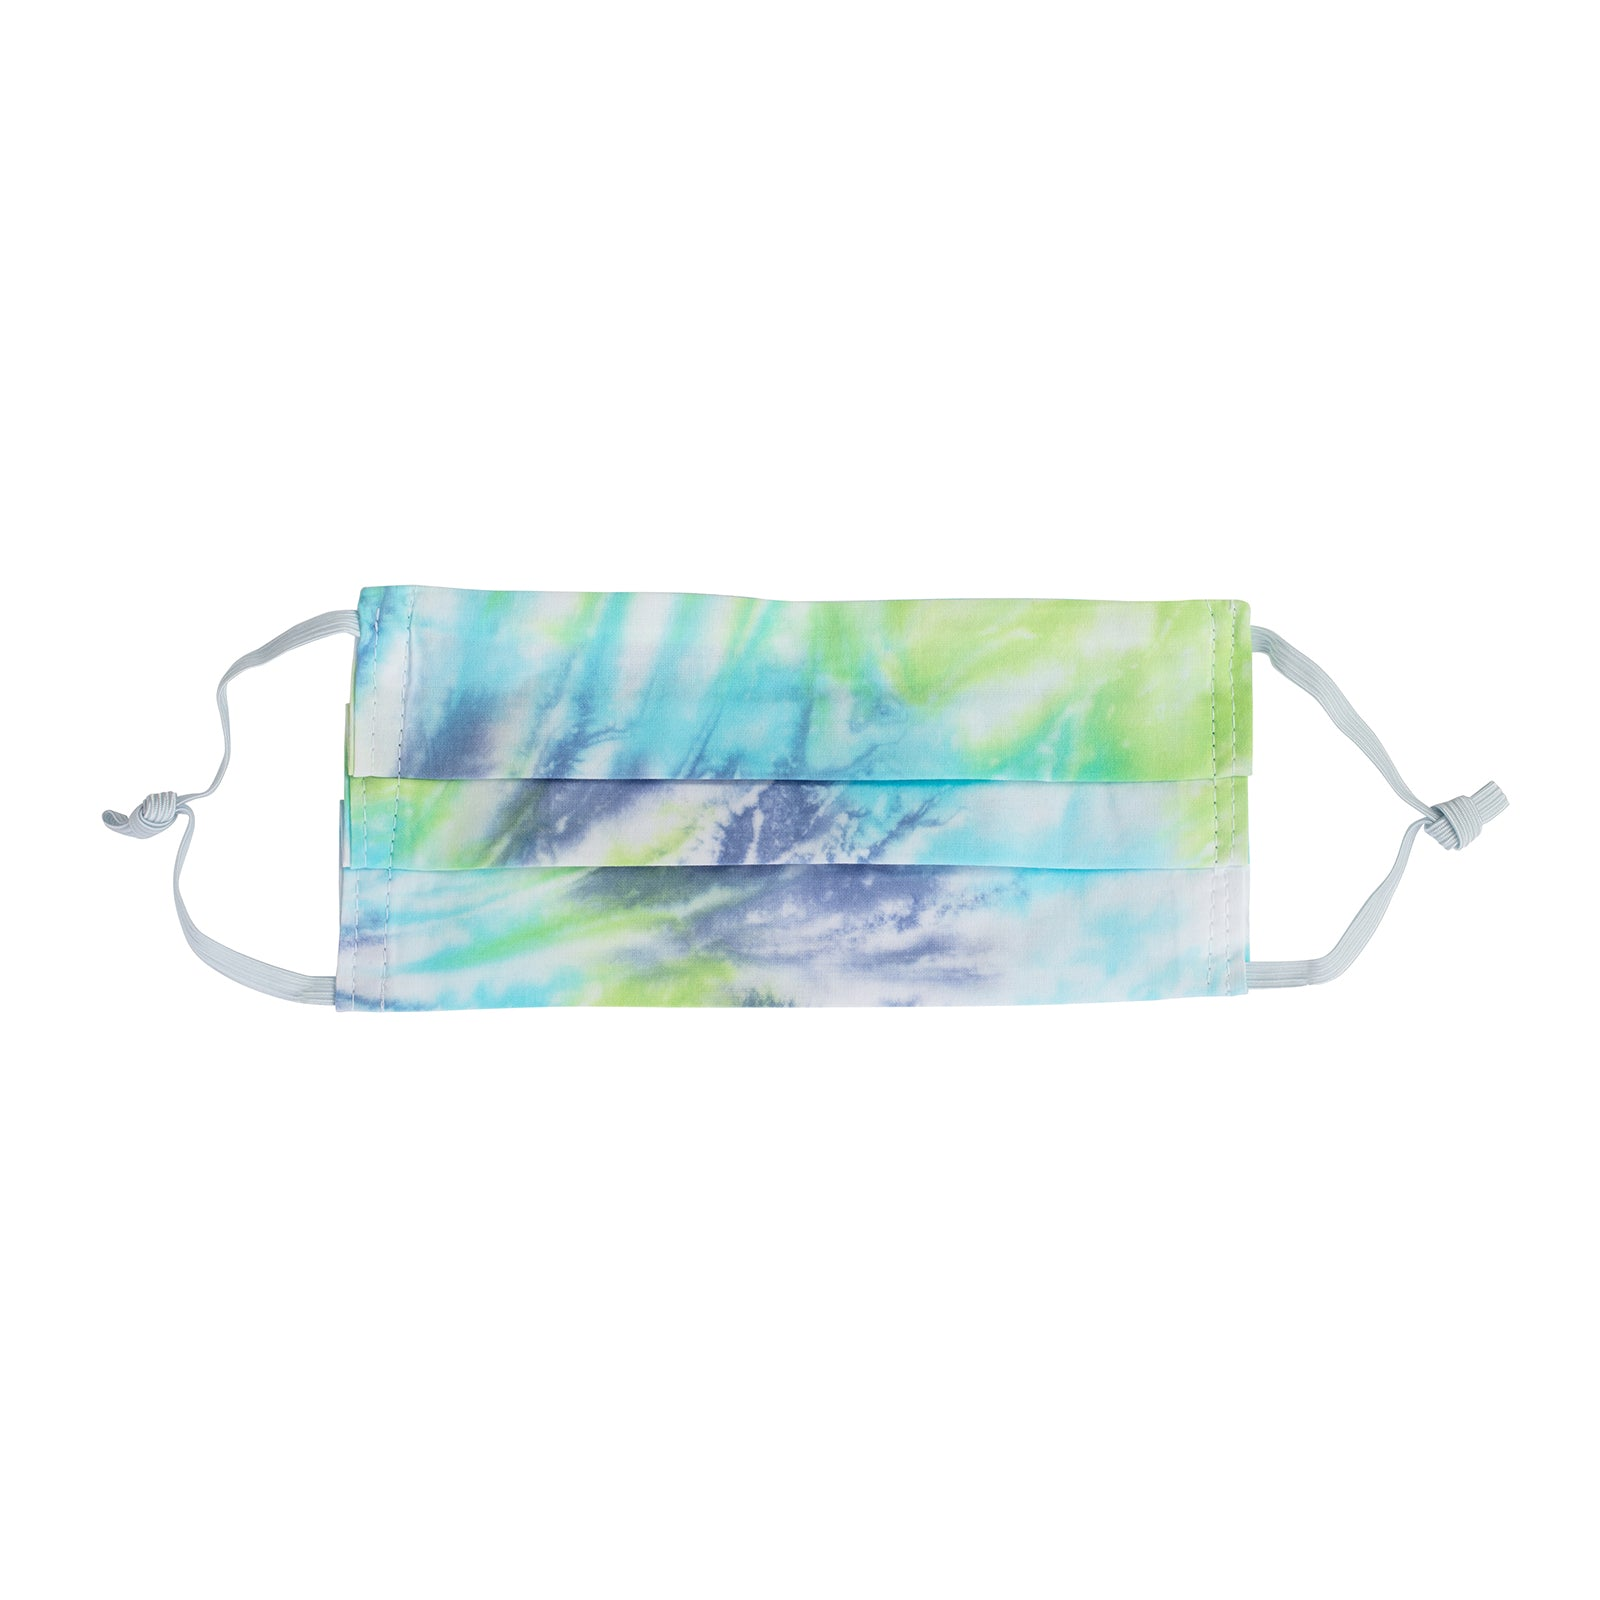 Fraction LA Tie Dye Face Mask - Navy, Turquoise & Emerald - Accessories - Broken English Jewelry